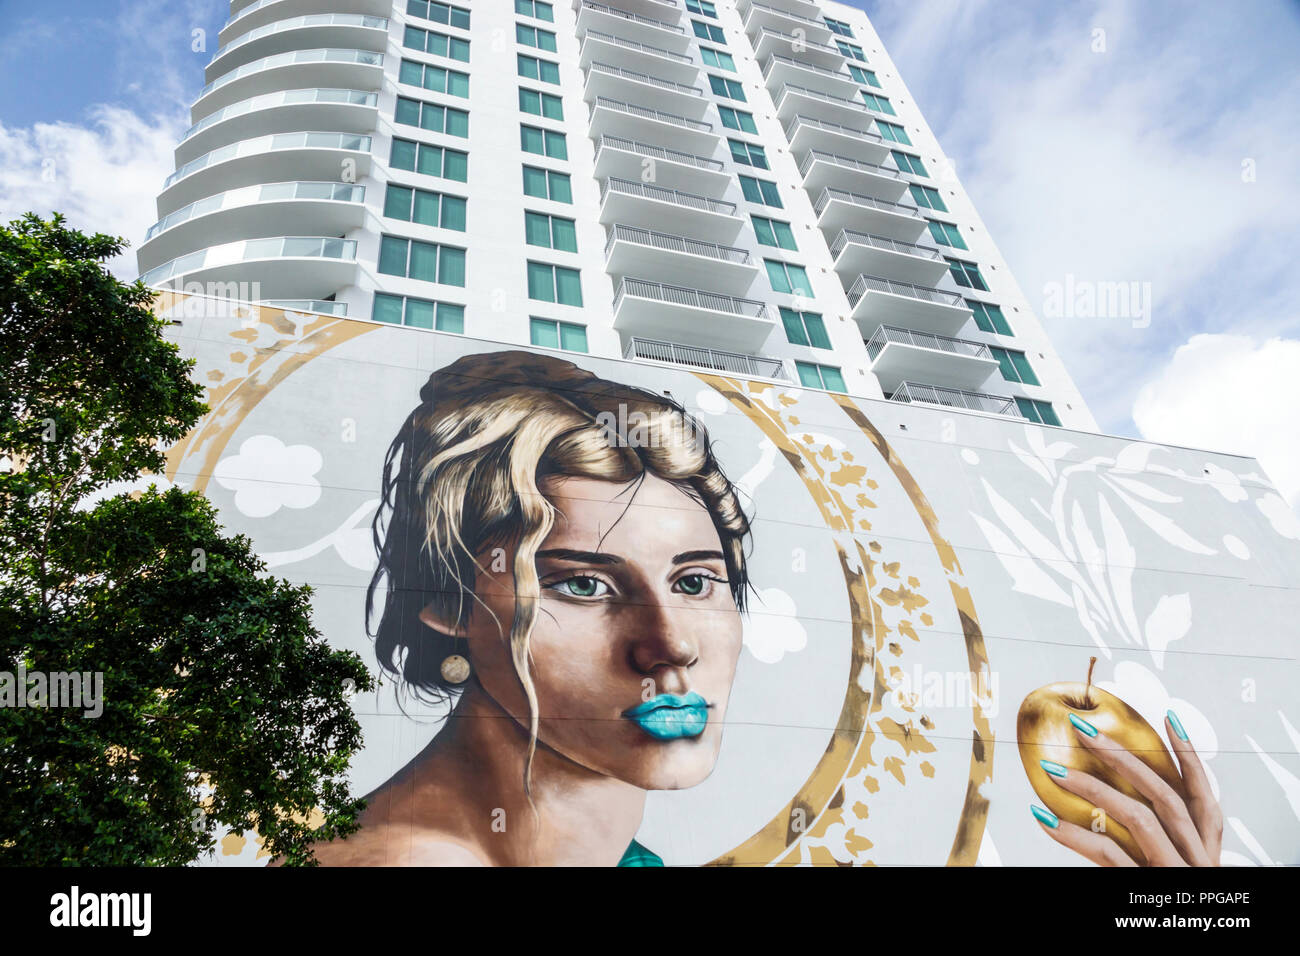 West Palm Beach Florida giant murals The Alexander art artwork high rise condominium building - Stock Image